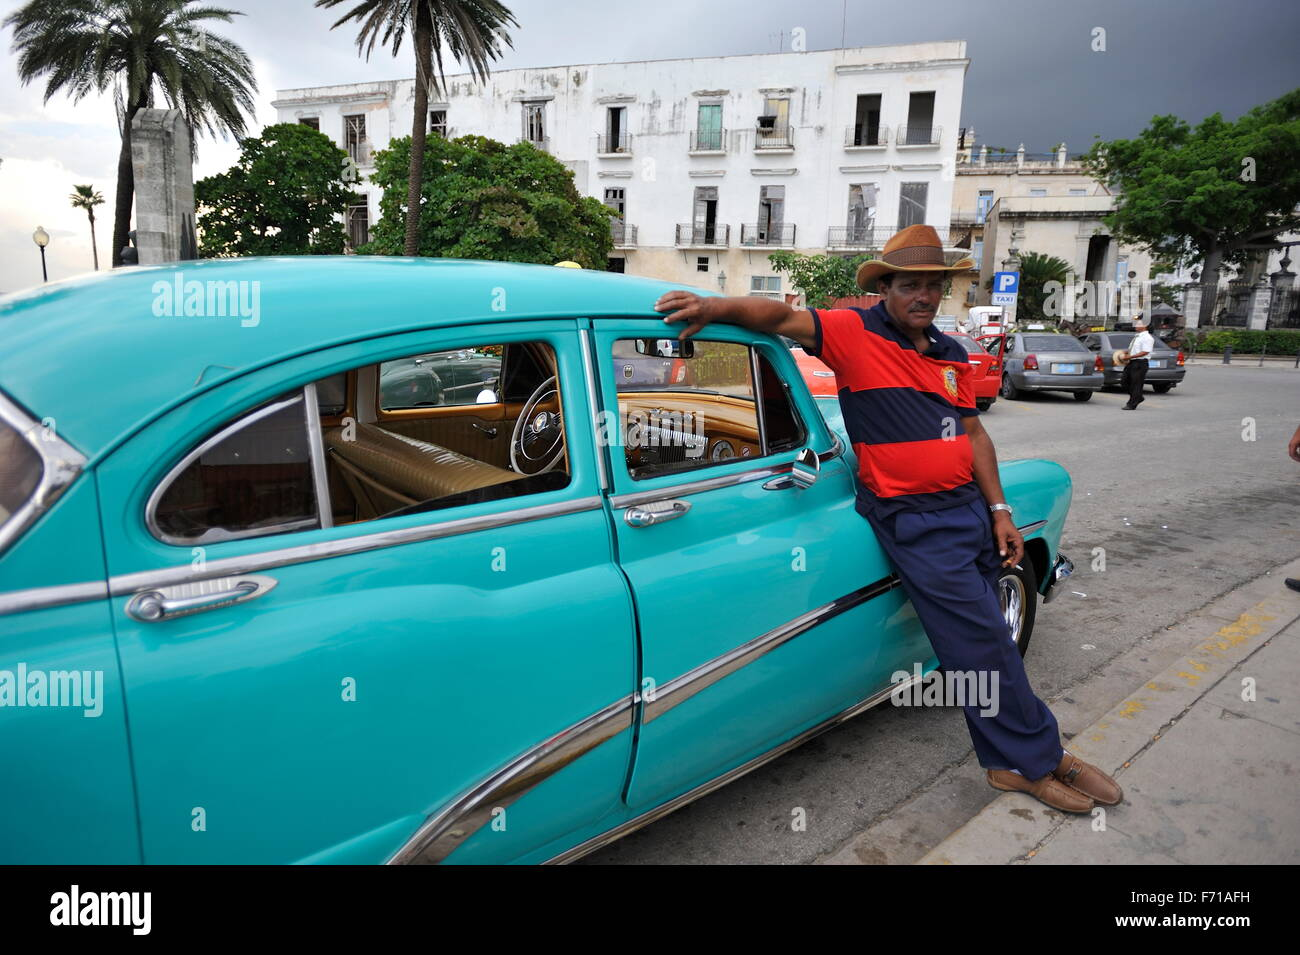 Old vintage cars in the center of Havana city in Cuba. - Stock Image